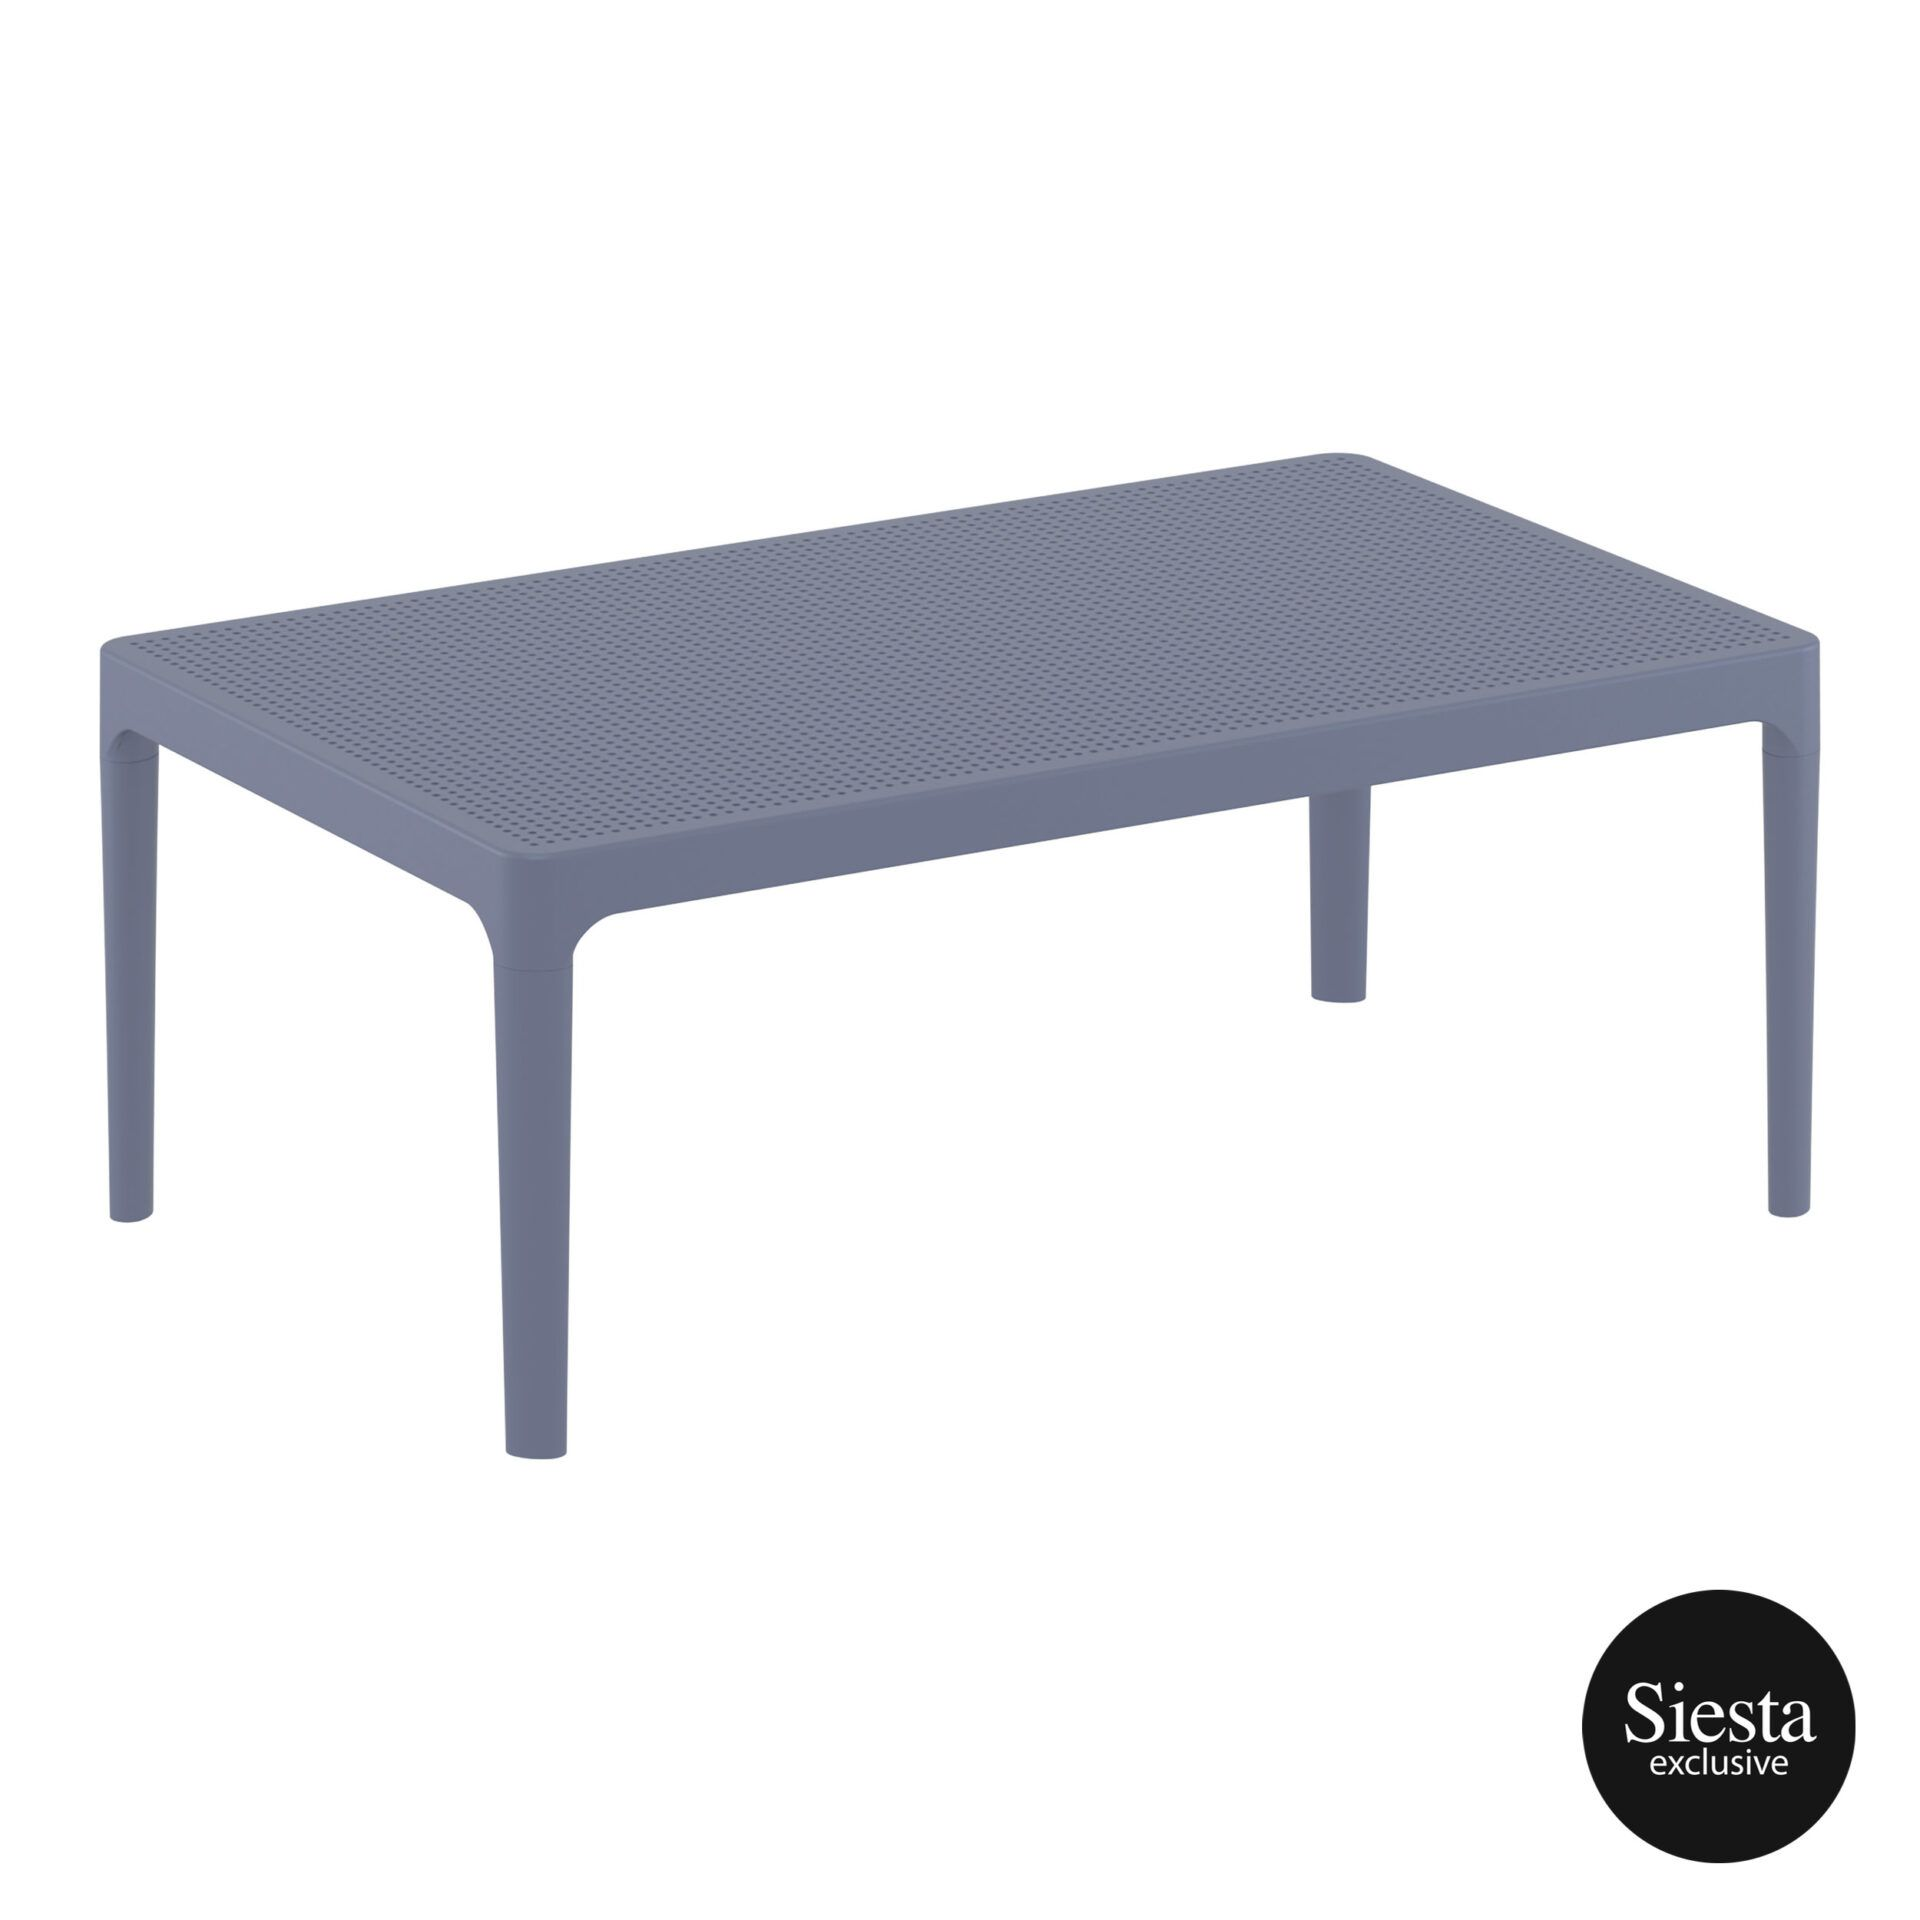 polypropylene outdoor sky lounge coffee table darkgrey front side 1